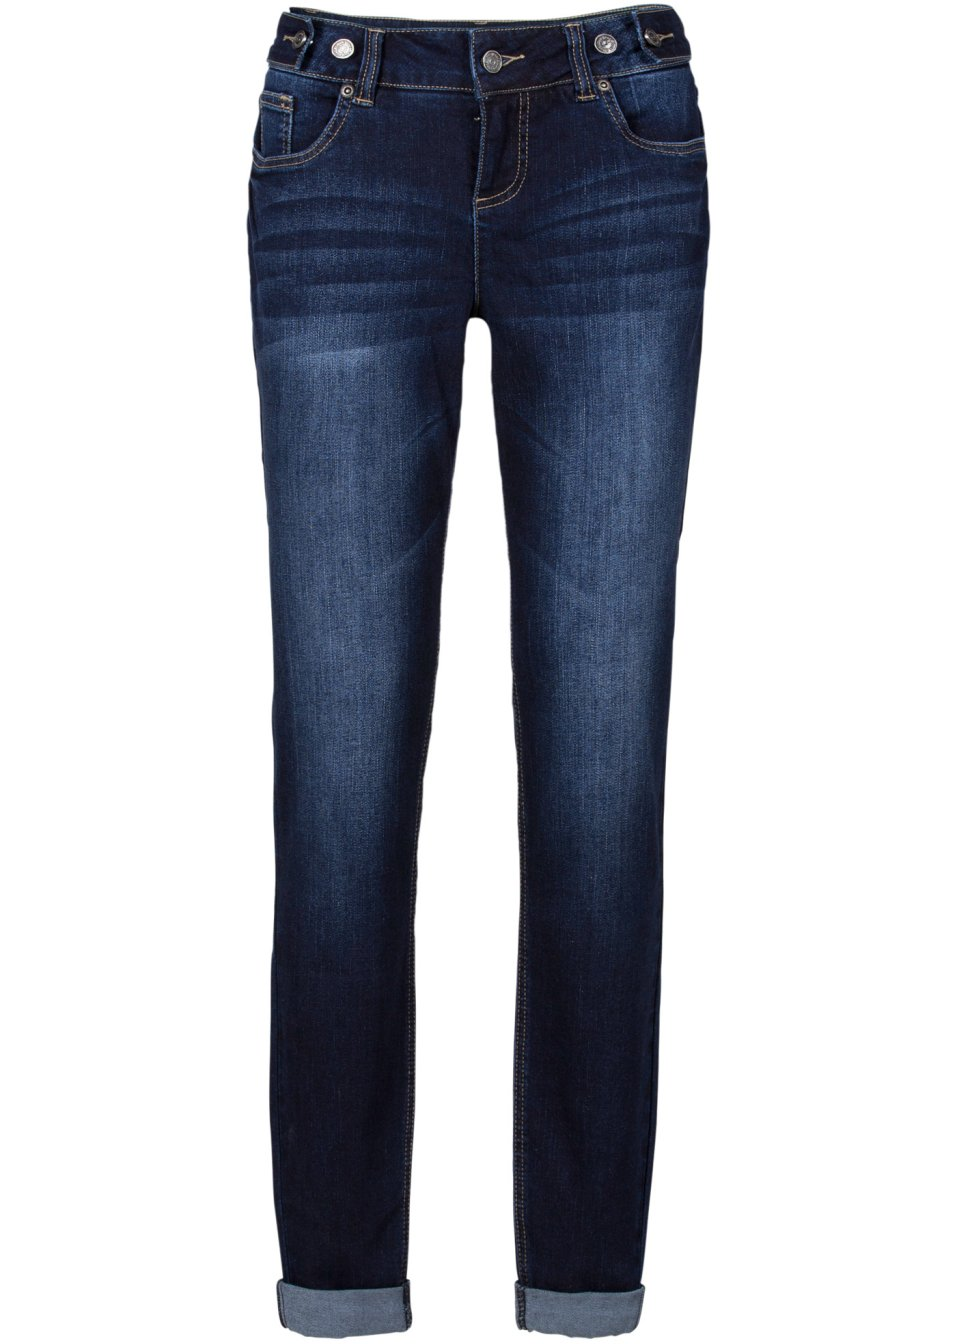 Angesagte Jeans mit Tapered Leg - dunkelblau Normal TDqxR 7XpIq